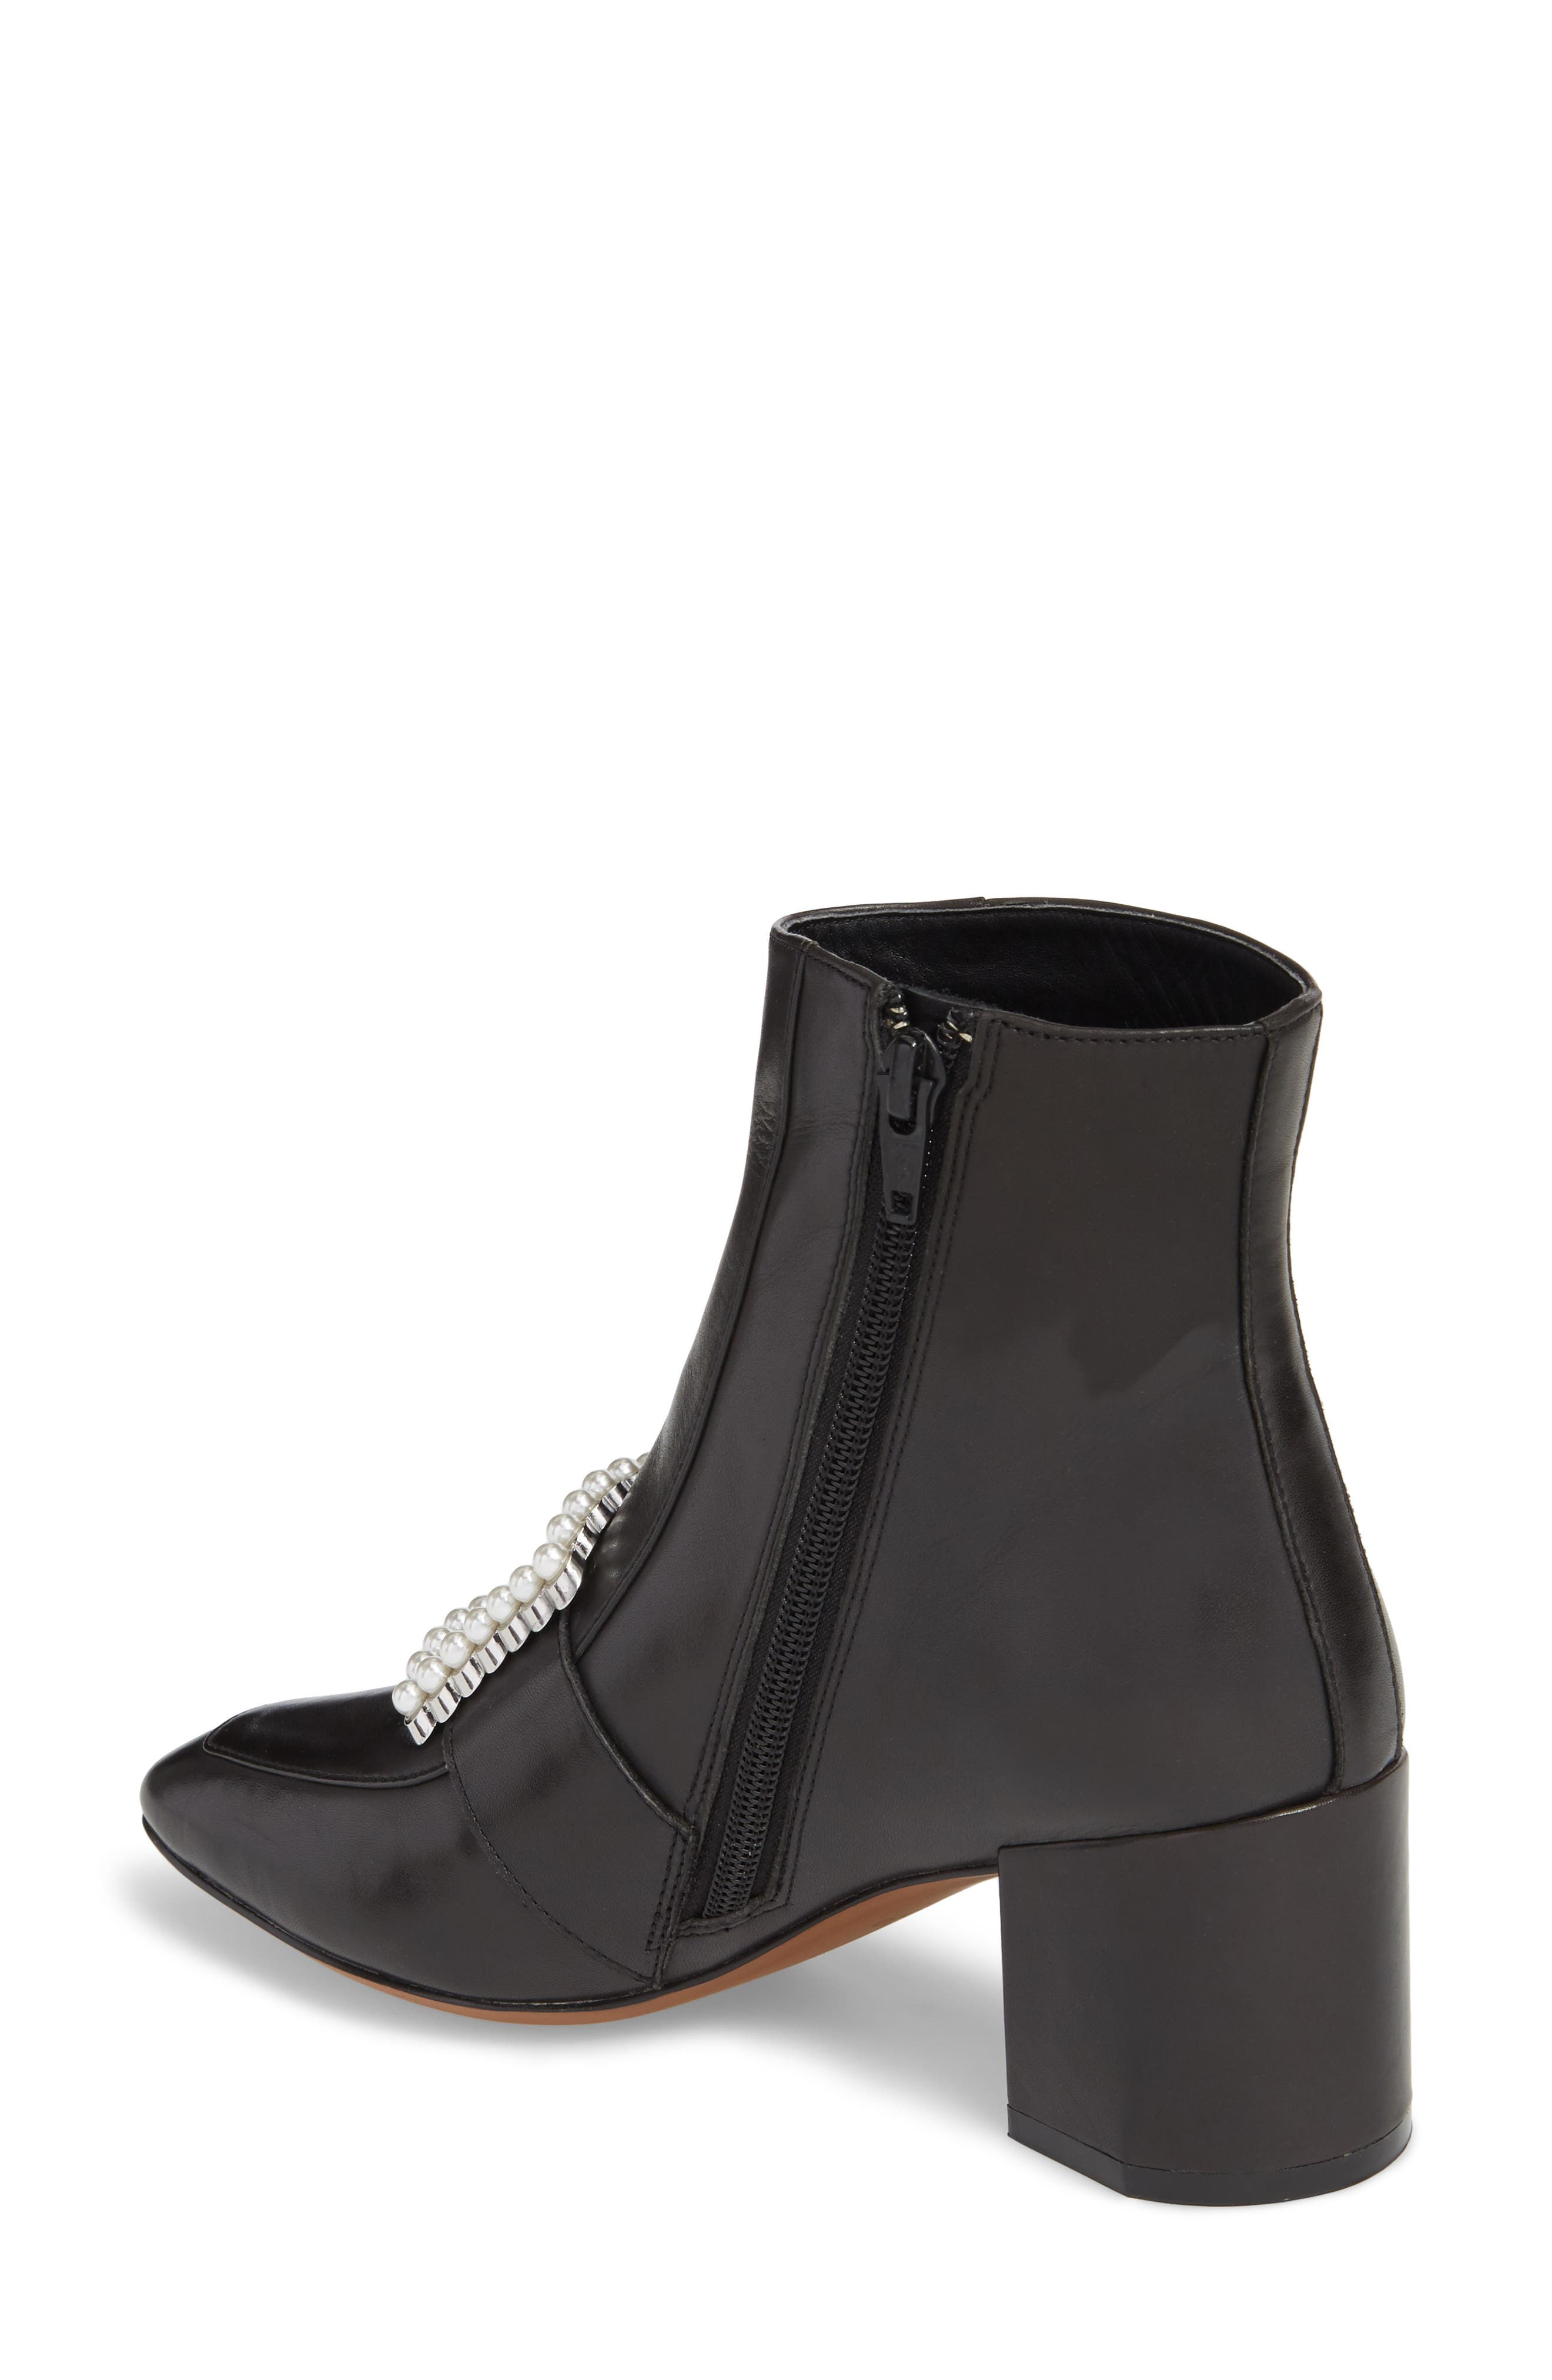 Cadence Buckle Bootie,                             Alternate thumbnail 2, color,                             Black Leather